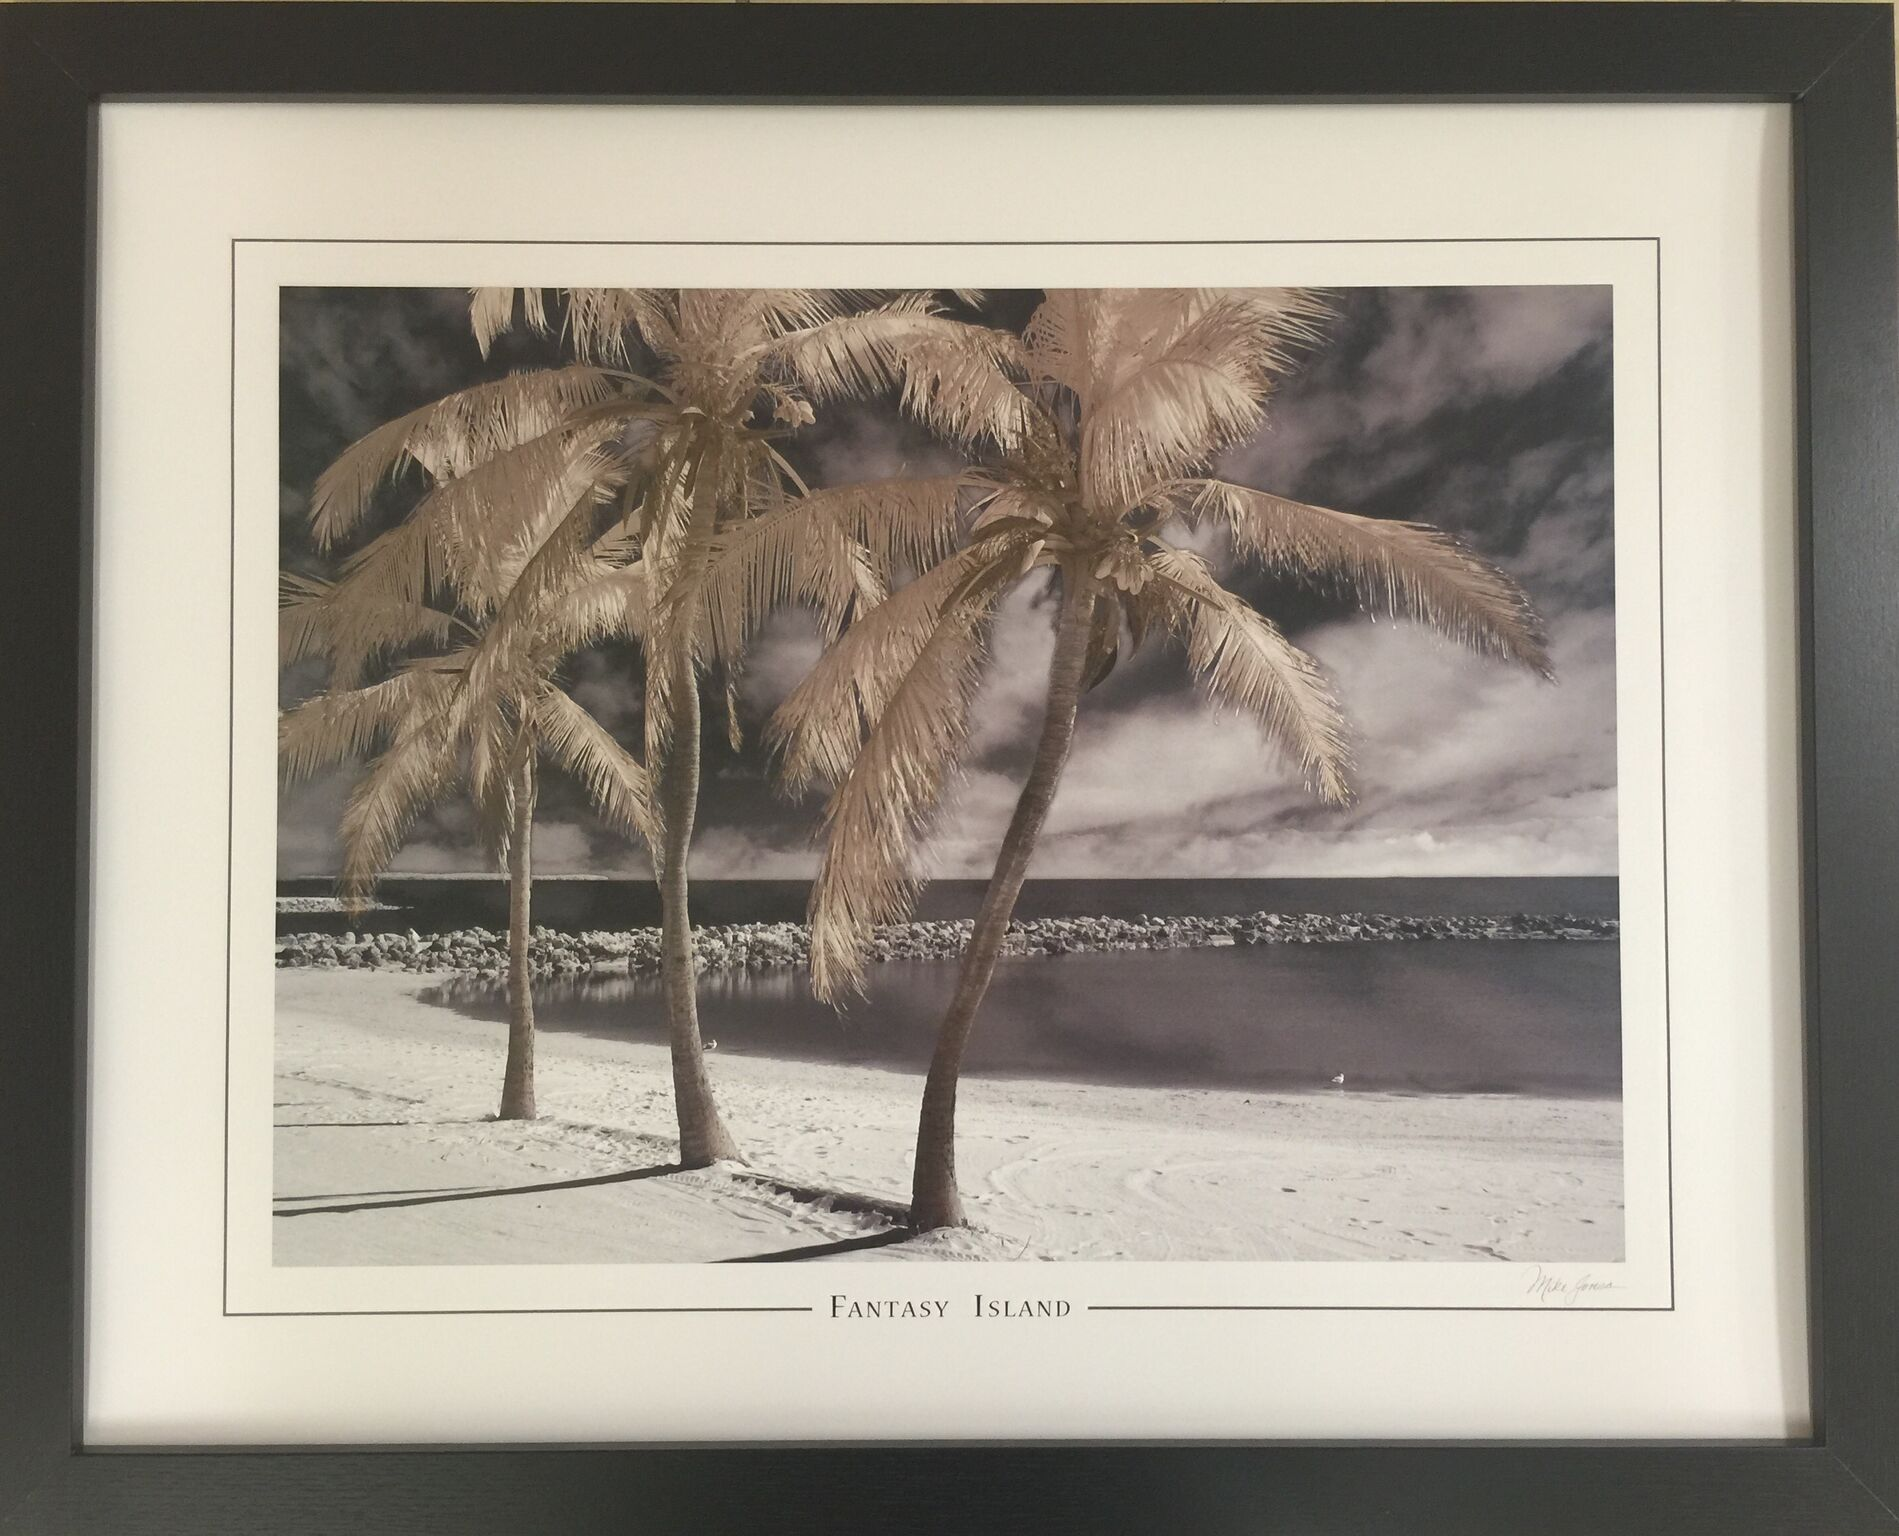 Accento Art 22x28 Framed Artwork by Supplier Generic